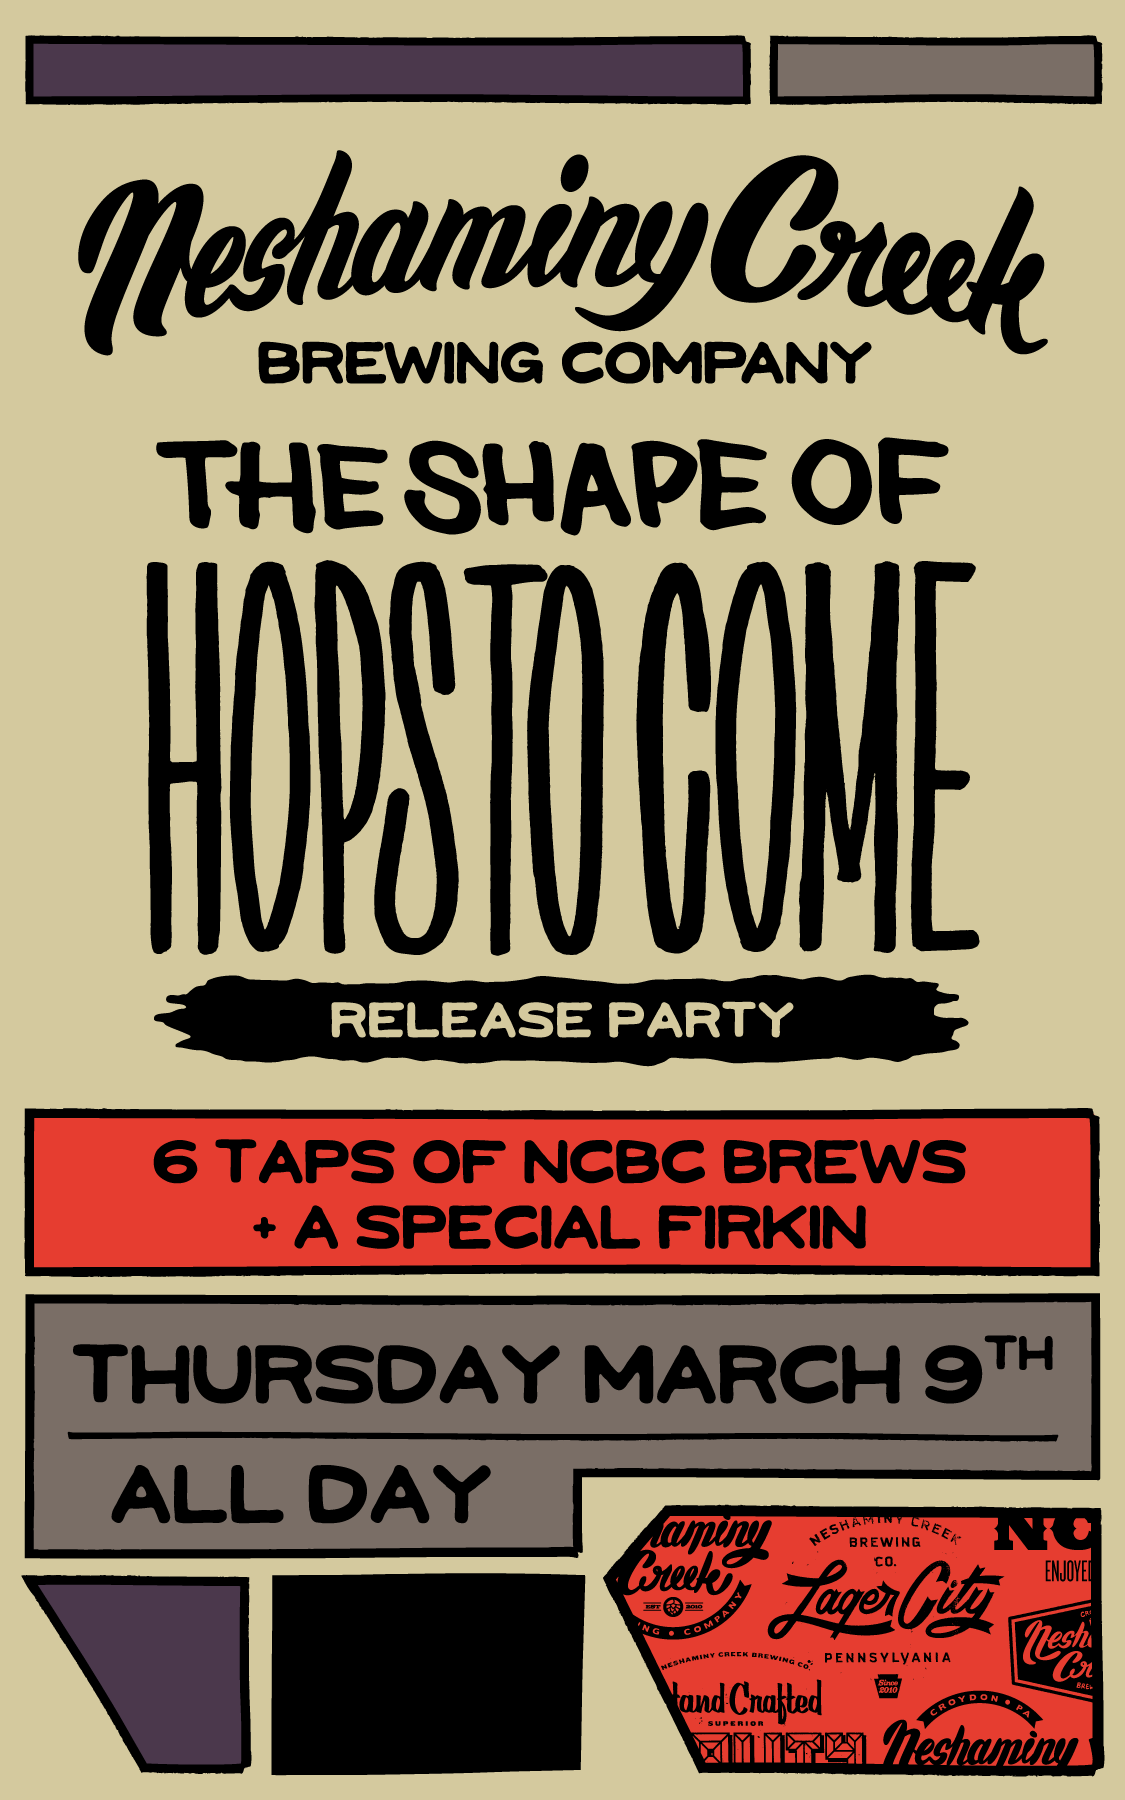 house-of-brews_NCBC-shape-release-party-posters_02-17-17